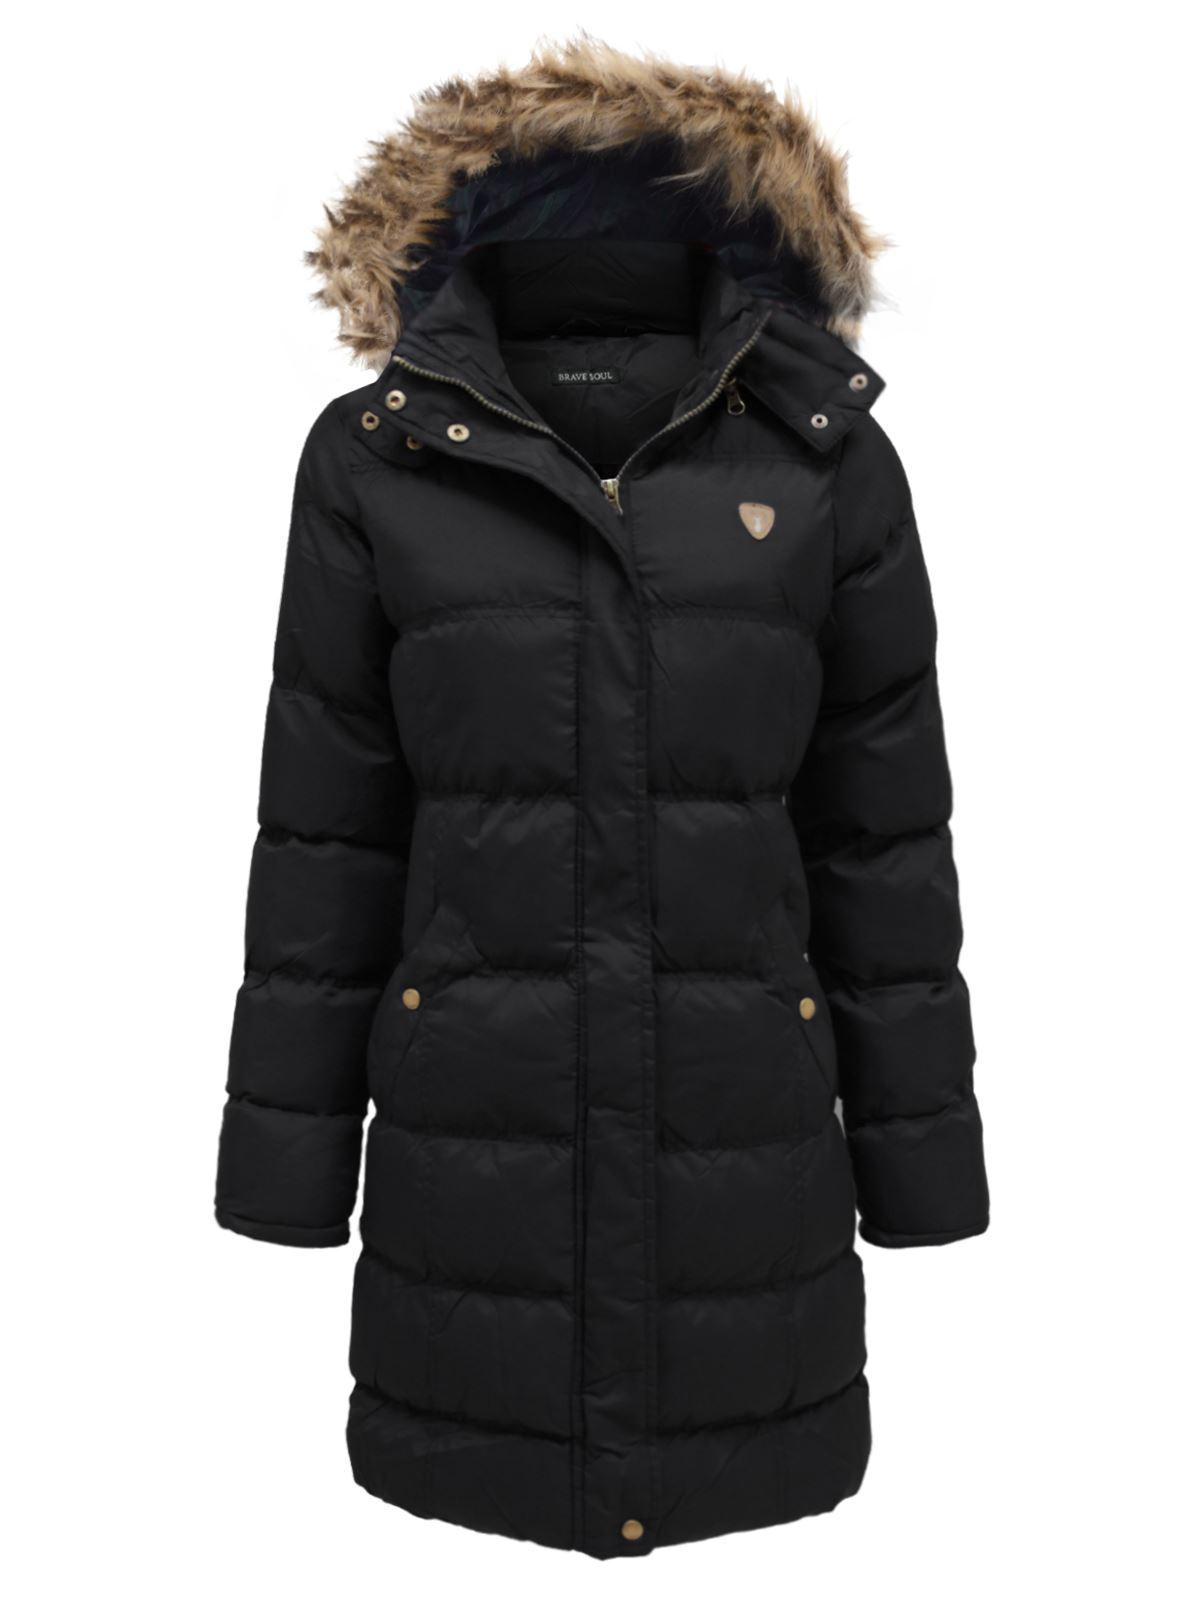 Puffer coats for women are ideal for a sporty look. Down jackets provide extra warmth, while lightweight pieces take up almost no space and are ideal for travelling. This season, combine your puffer jacket with an elegant garment for an original urban look.